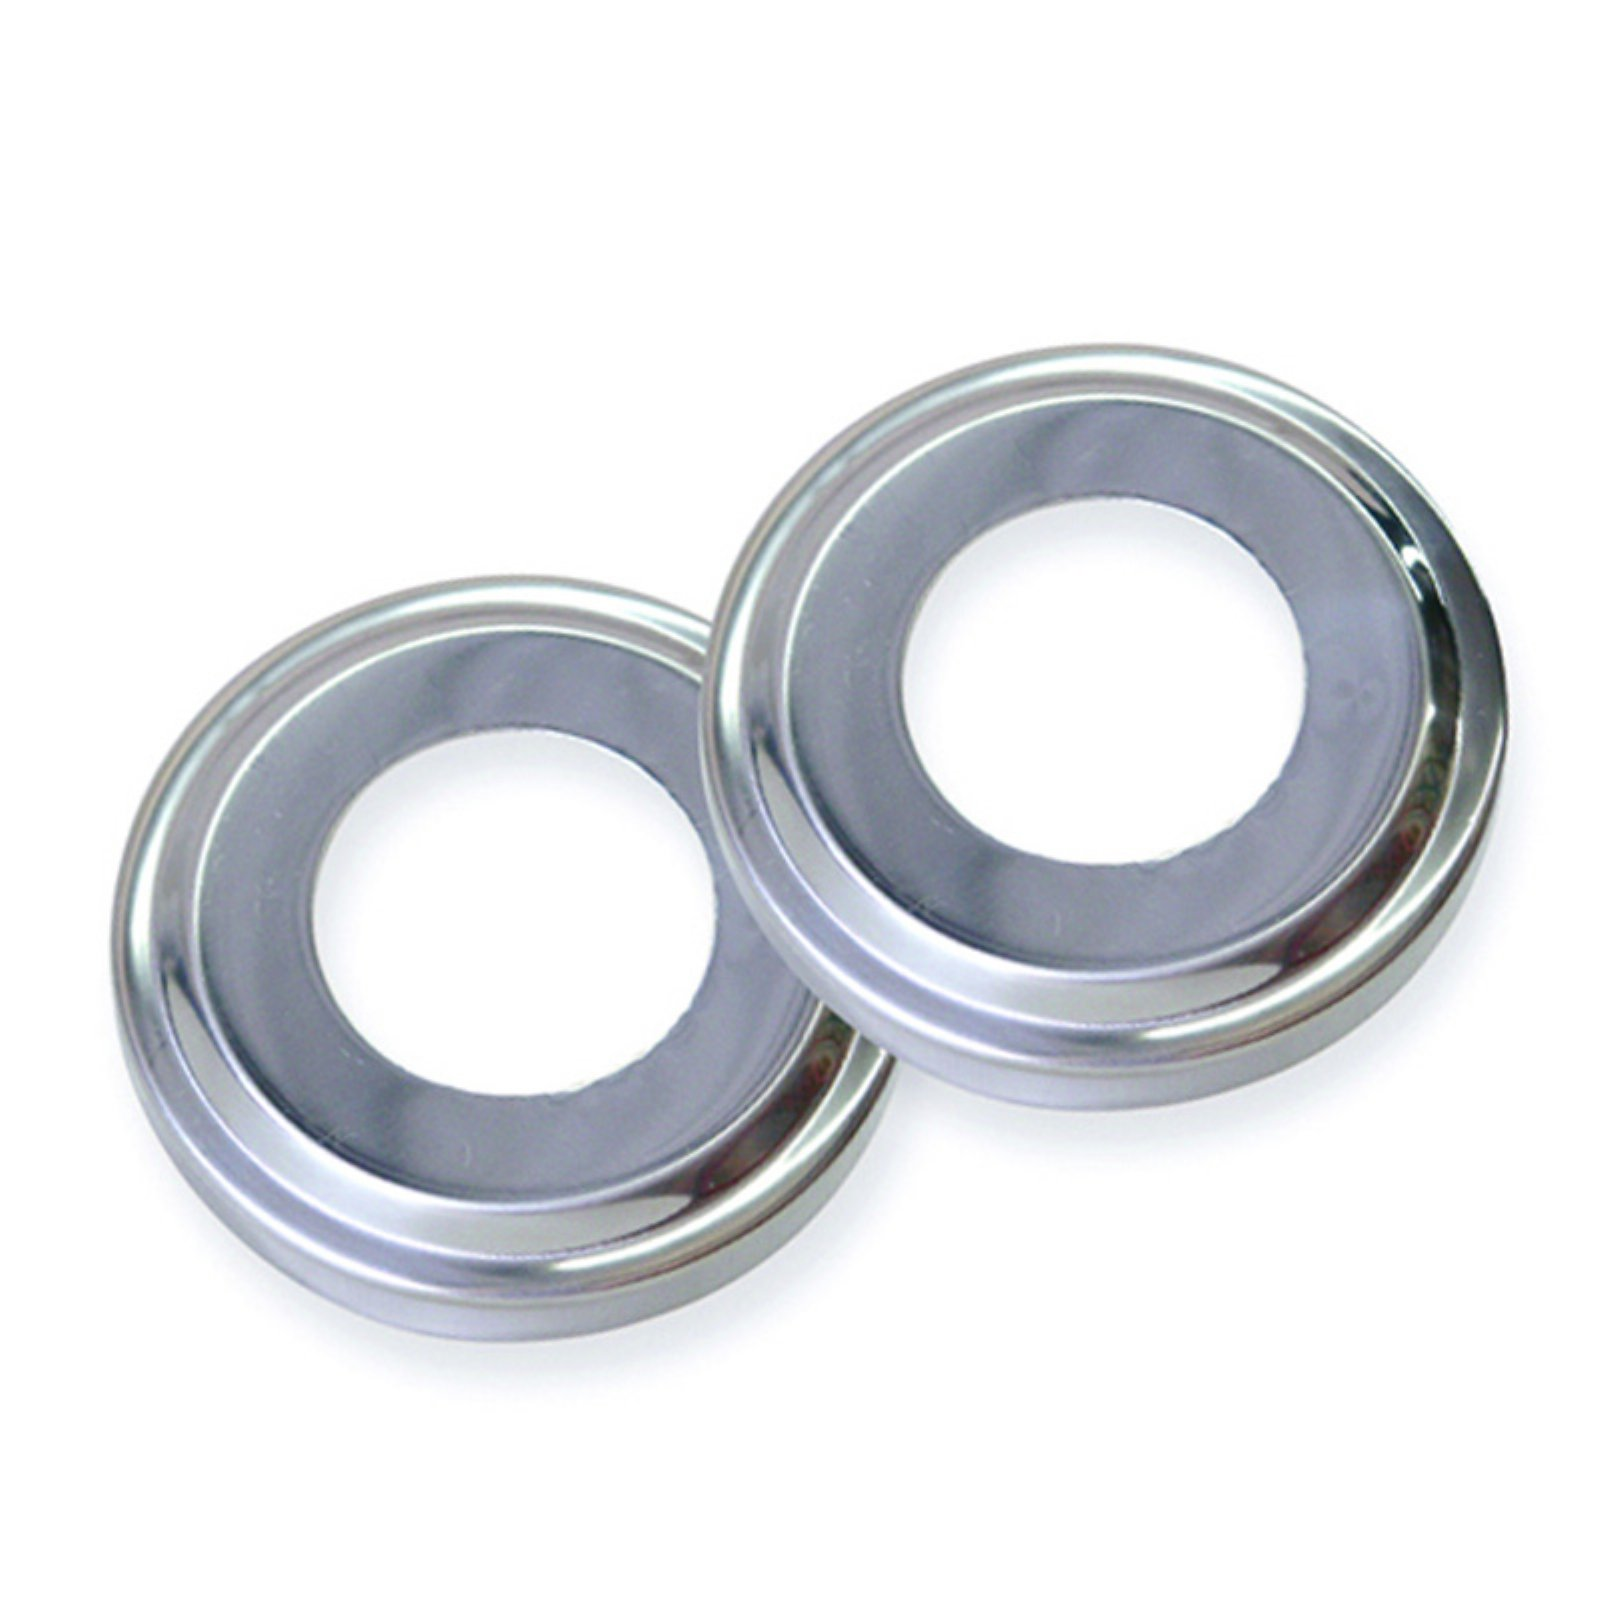 Swimline Stainless Steel Escutcheons for In Ground Pool Handrail, Pair